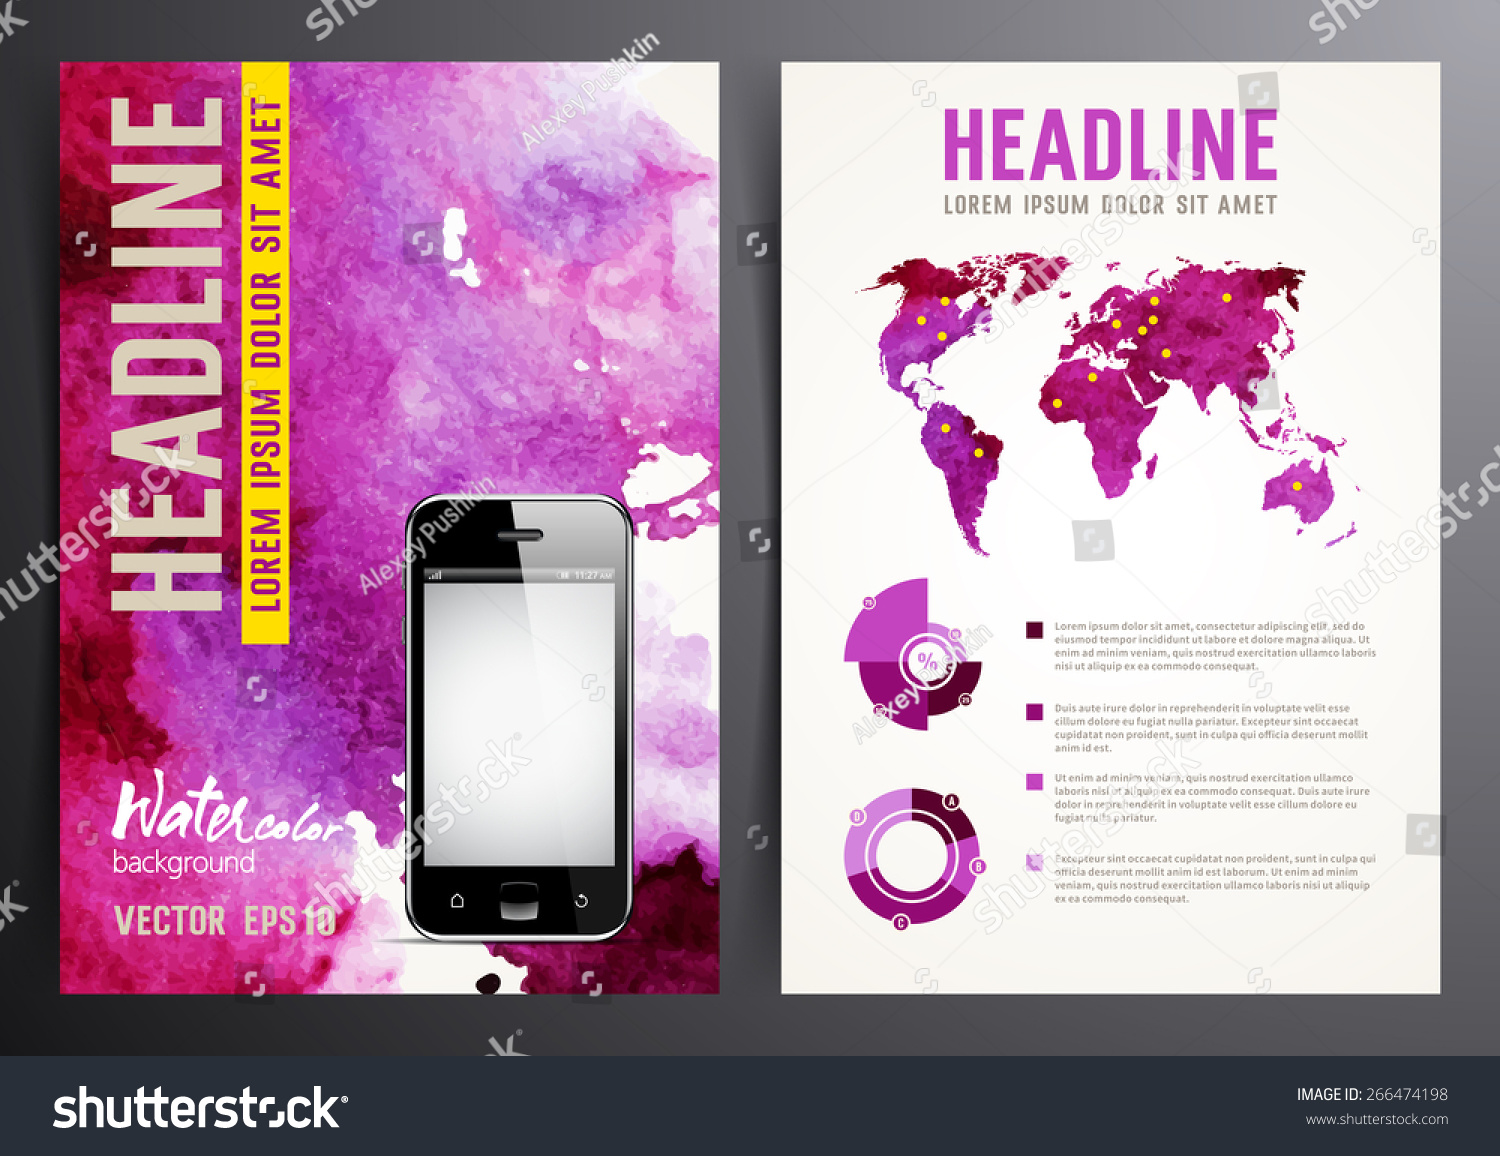 Elements of a poster design - Brochure Flyer Poster Design Template Infographic Elements Abstract Watercolor Background For Your Design